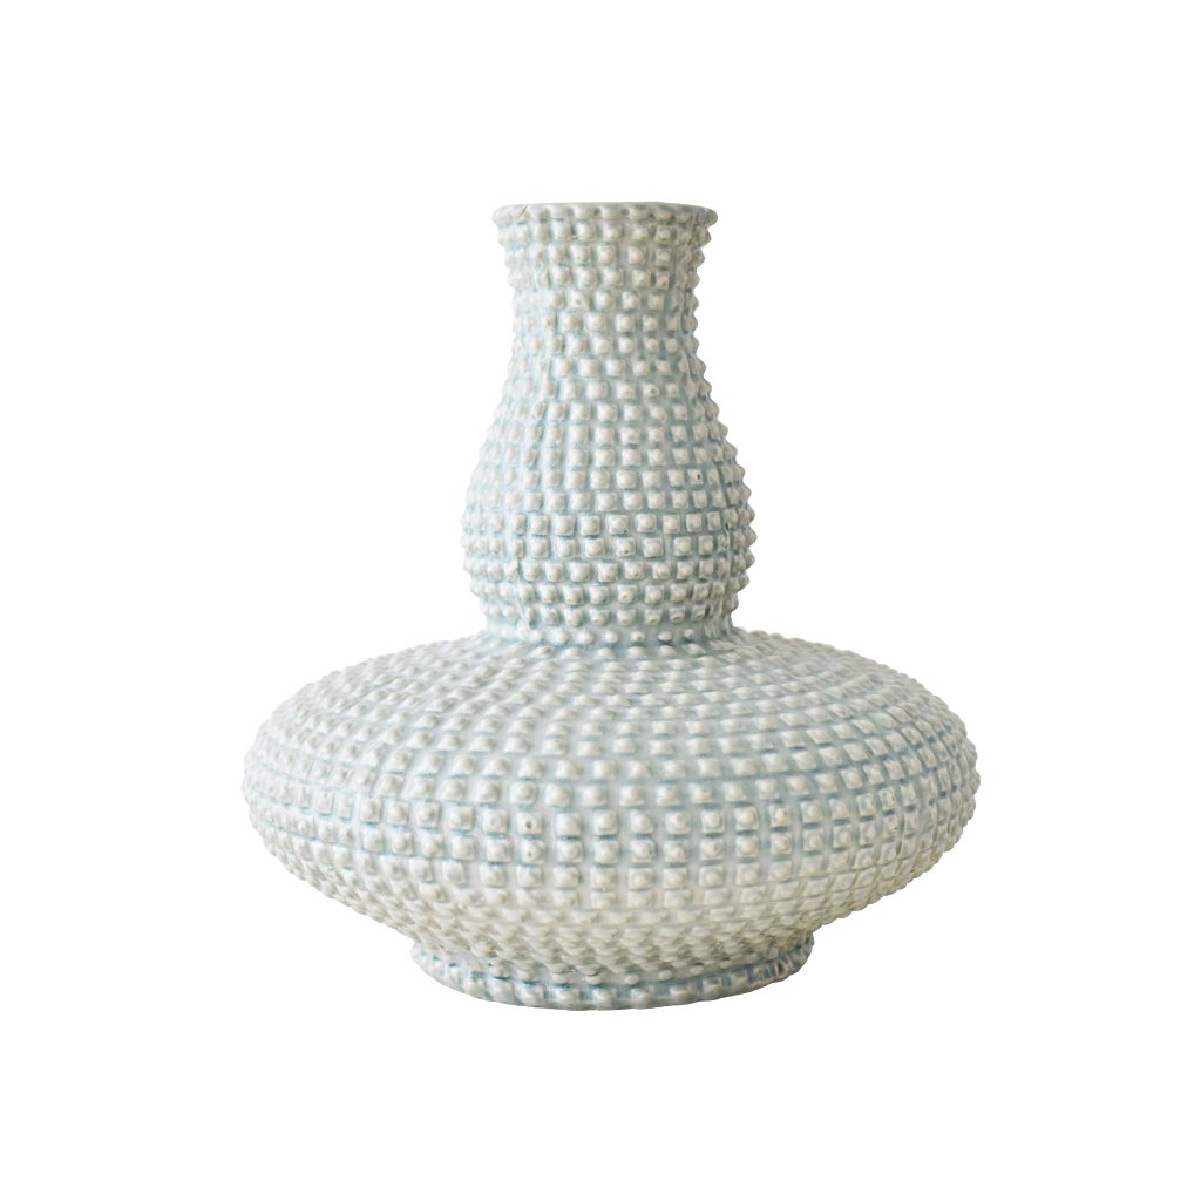 ceramic_vase_cozy_home_dubai